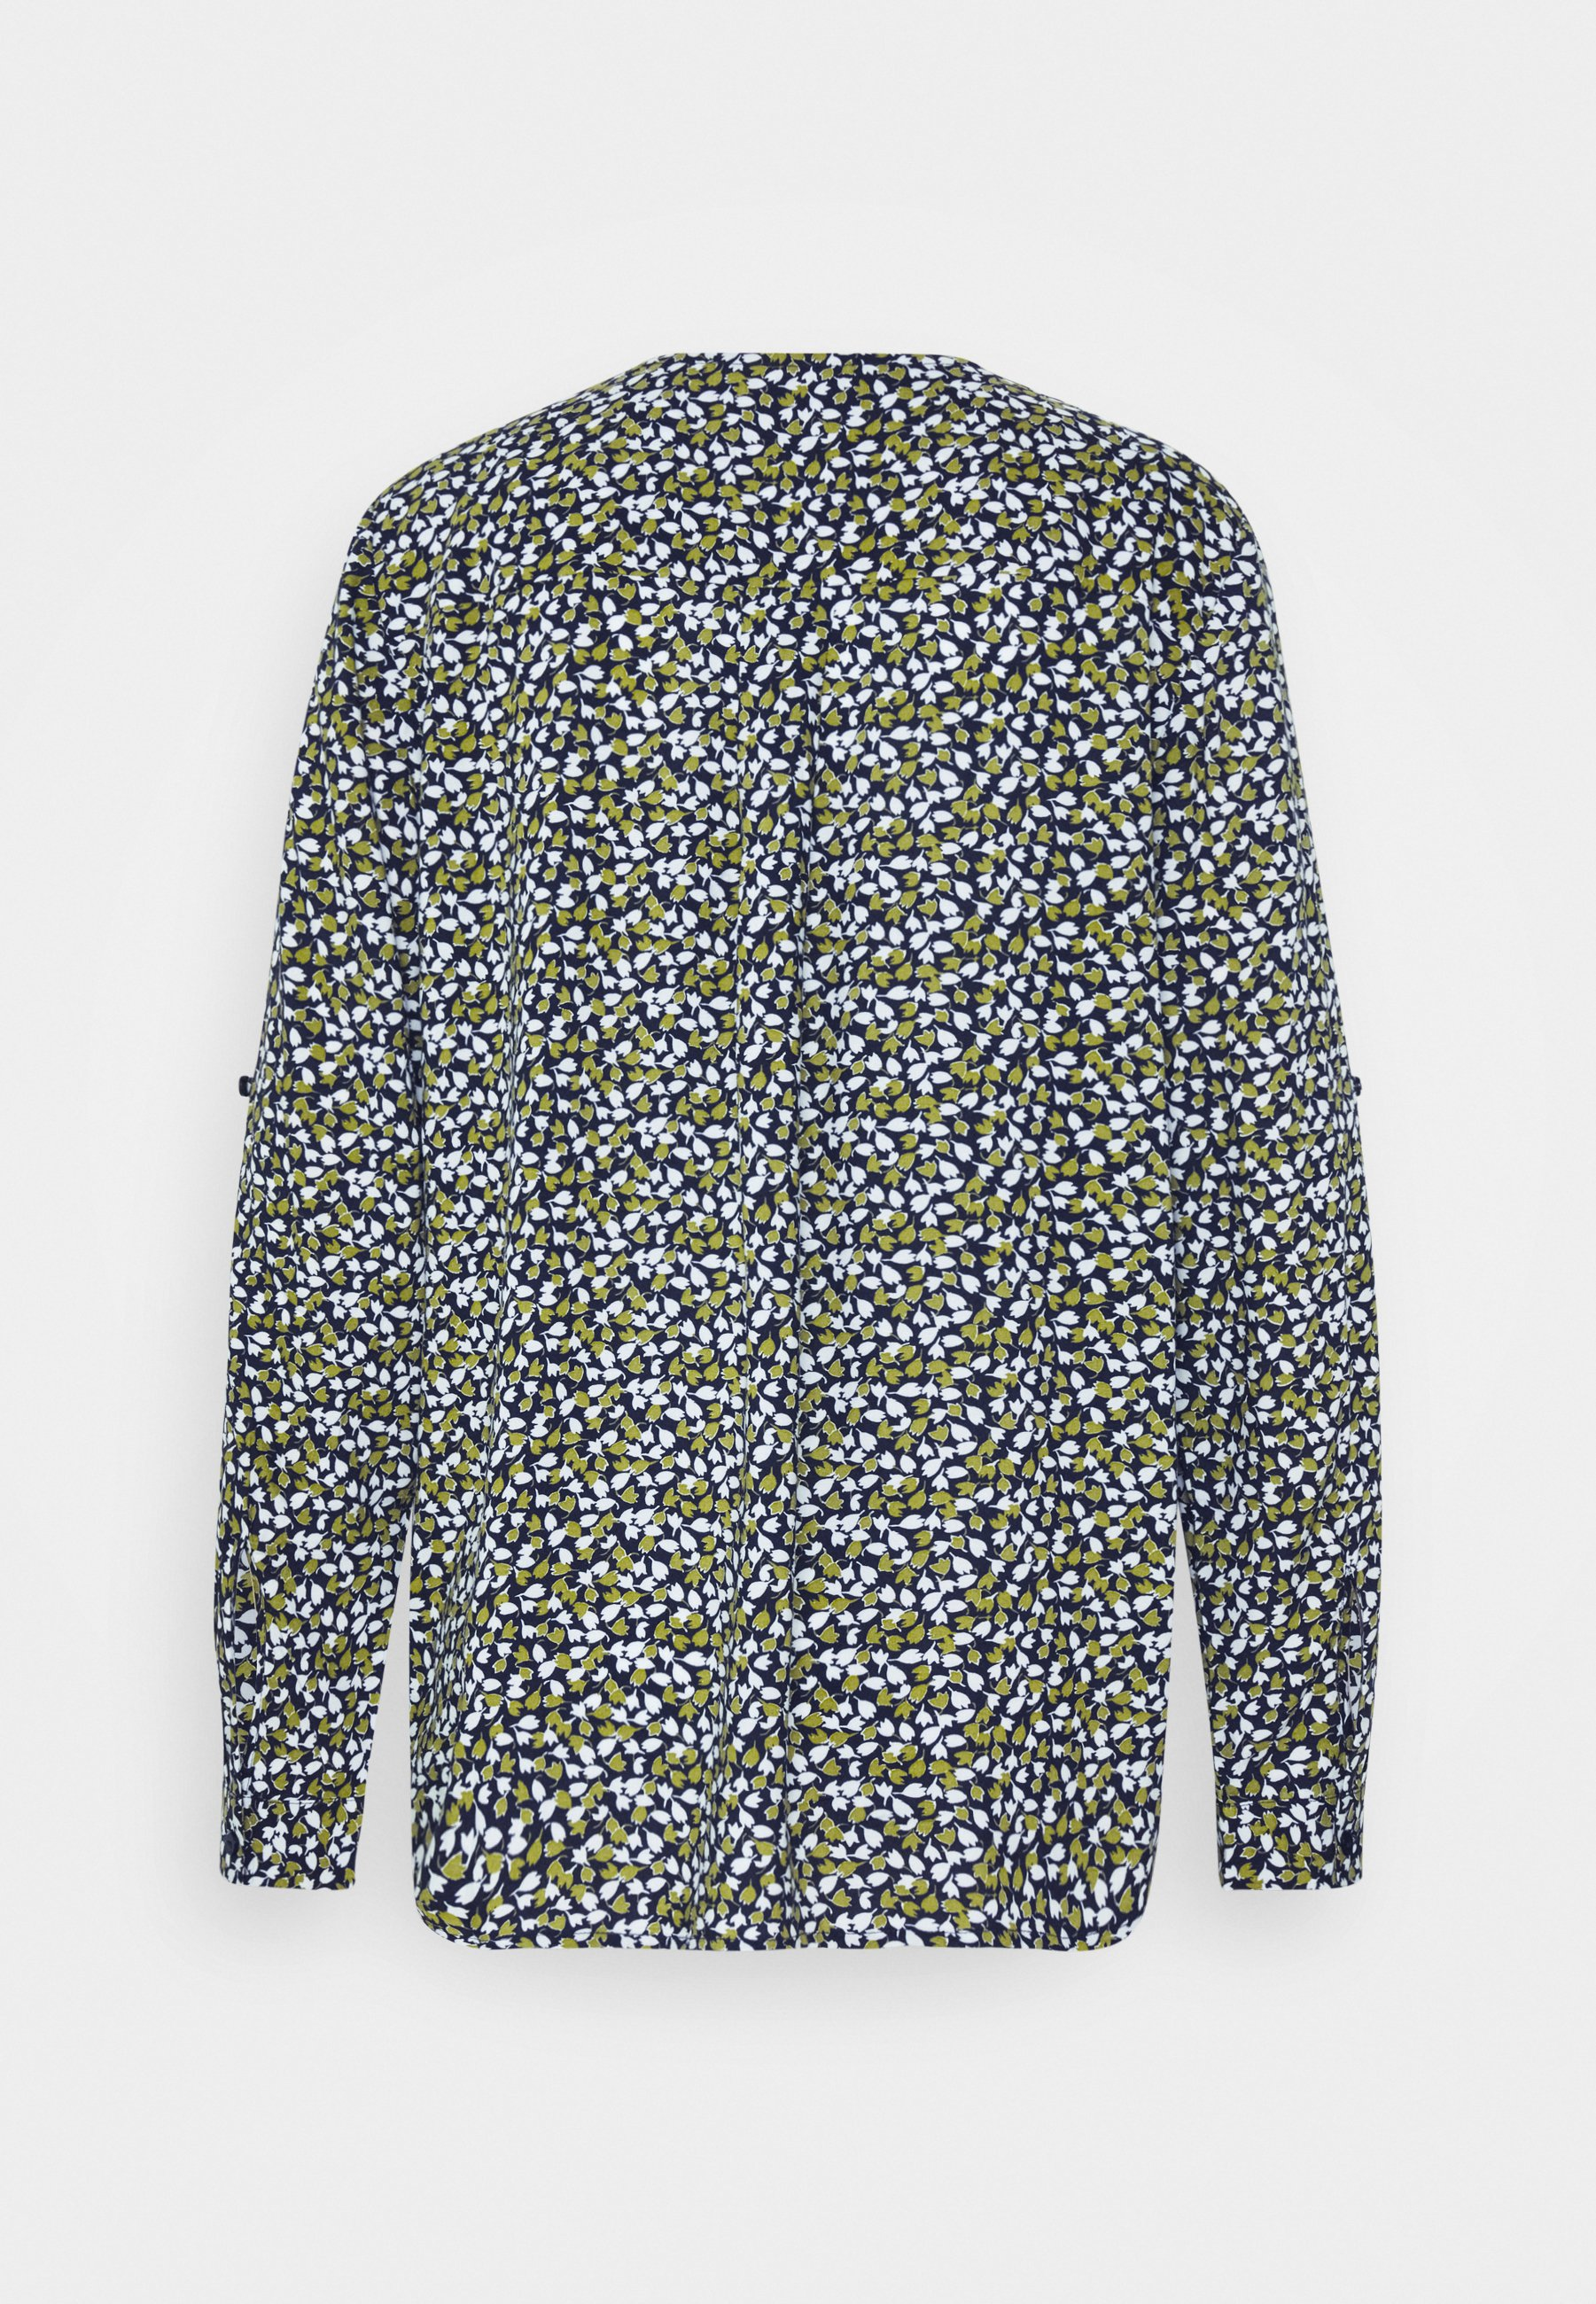 Tom Tailor Blouse Printed With Tape - Bluser Navy/green/blå